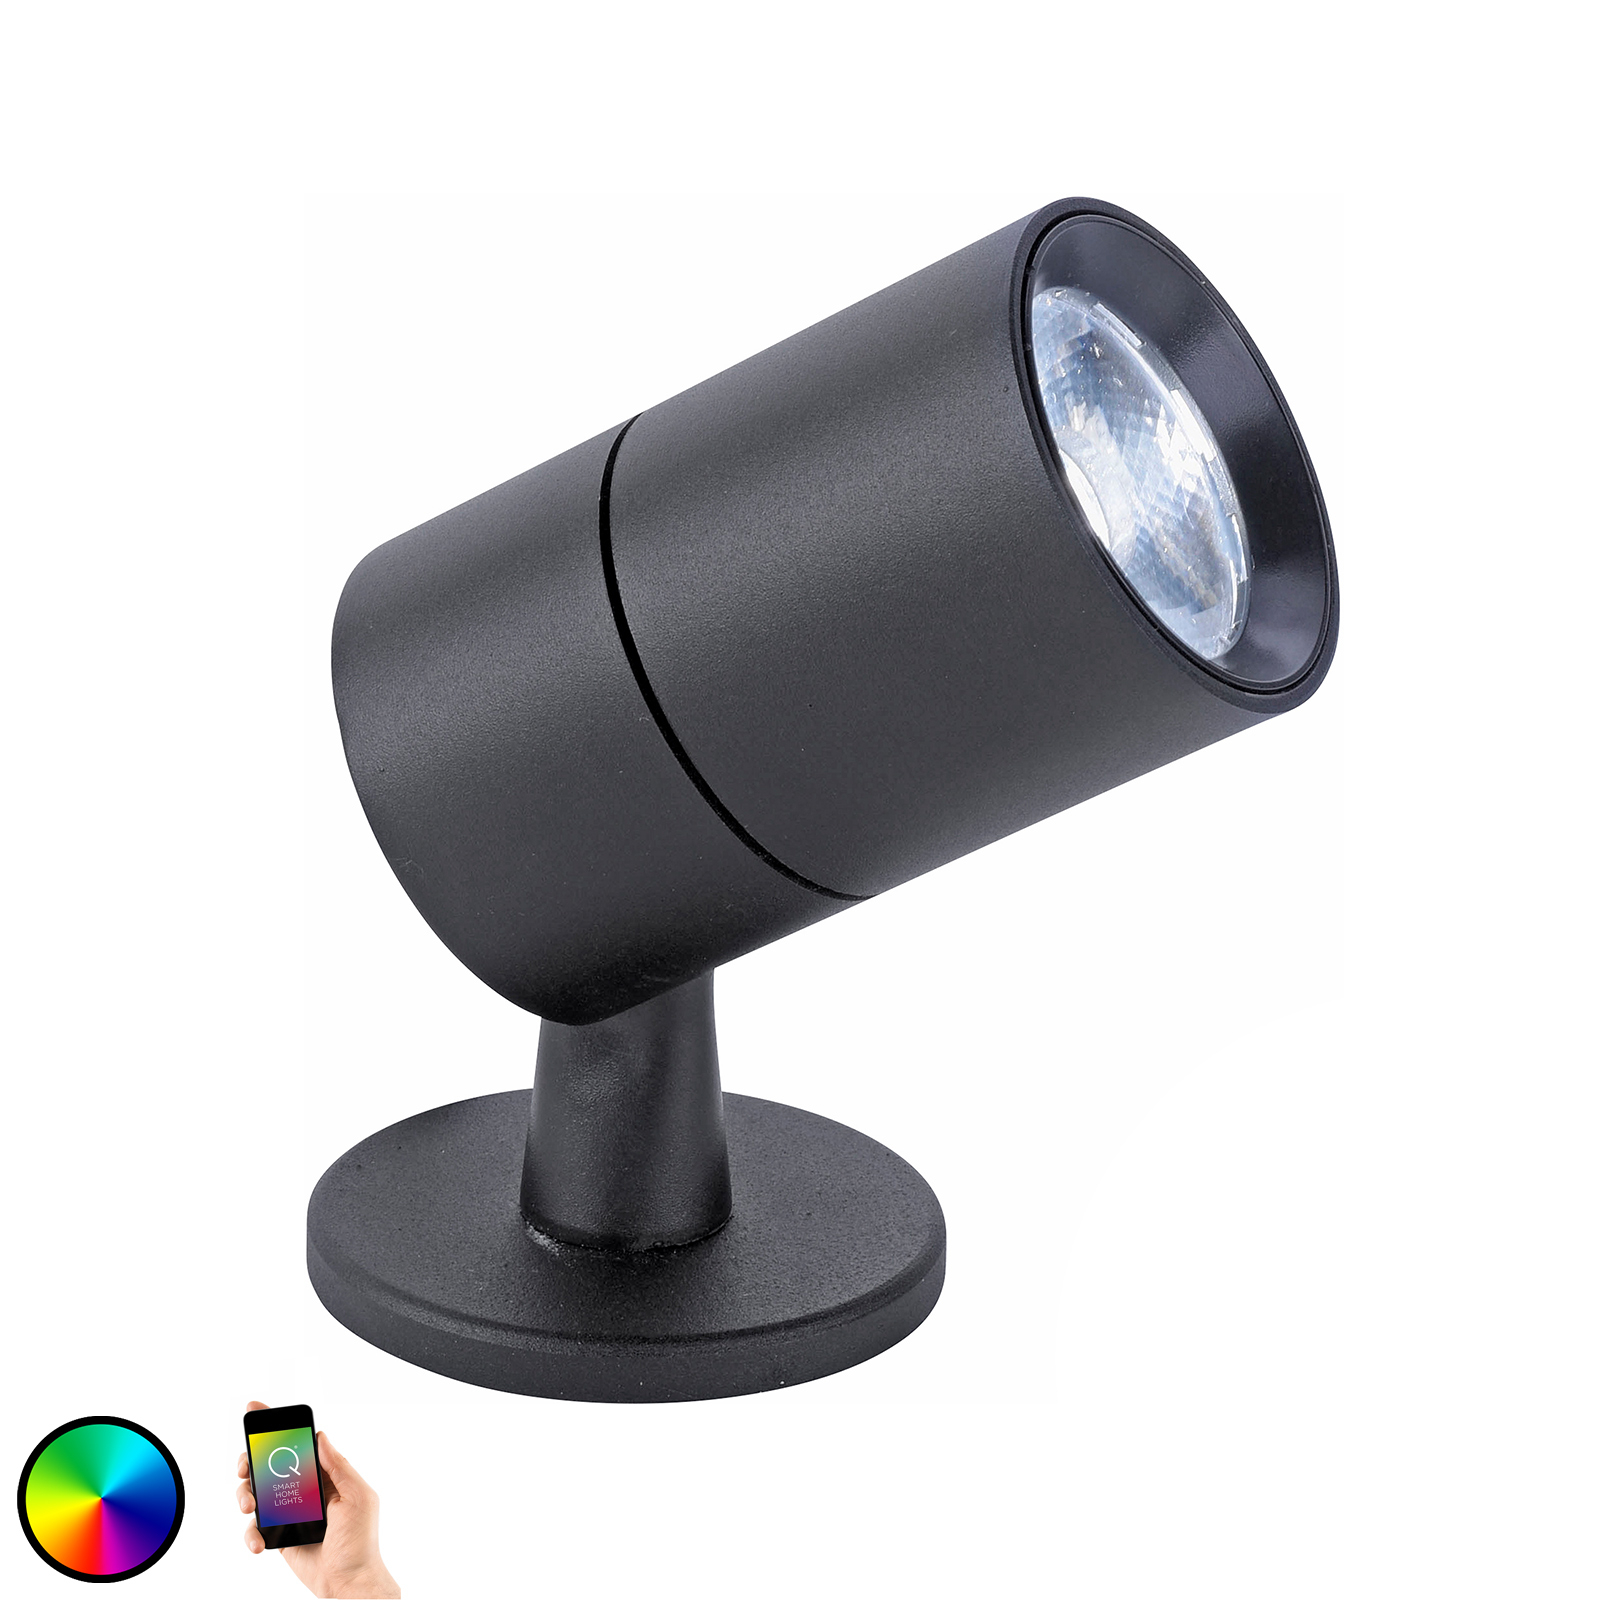 Paul Neuhaus Q-RAY LED tafellamp vloerlamp